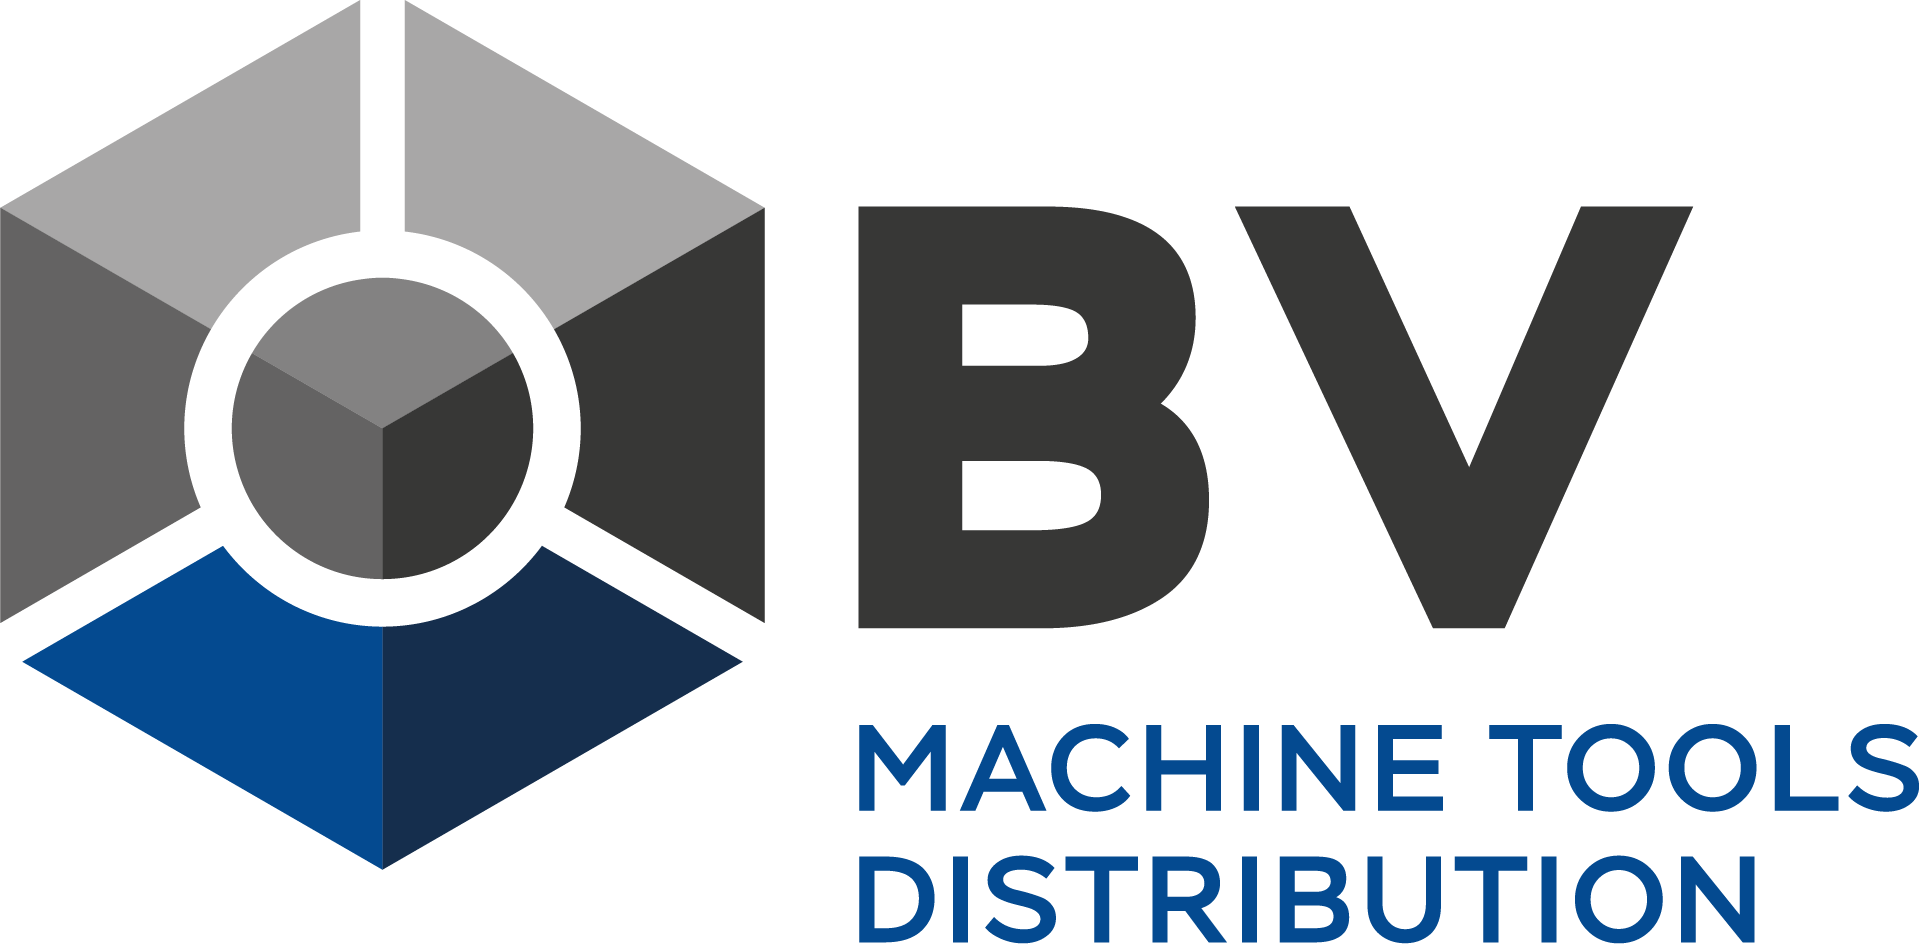 Machinerie BV - Machine tools distribution